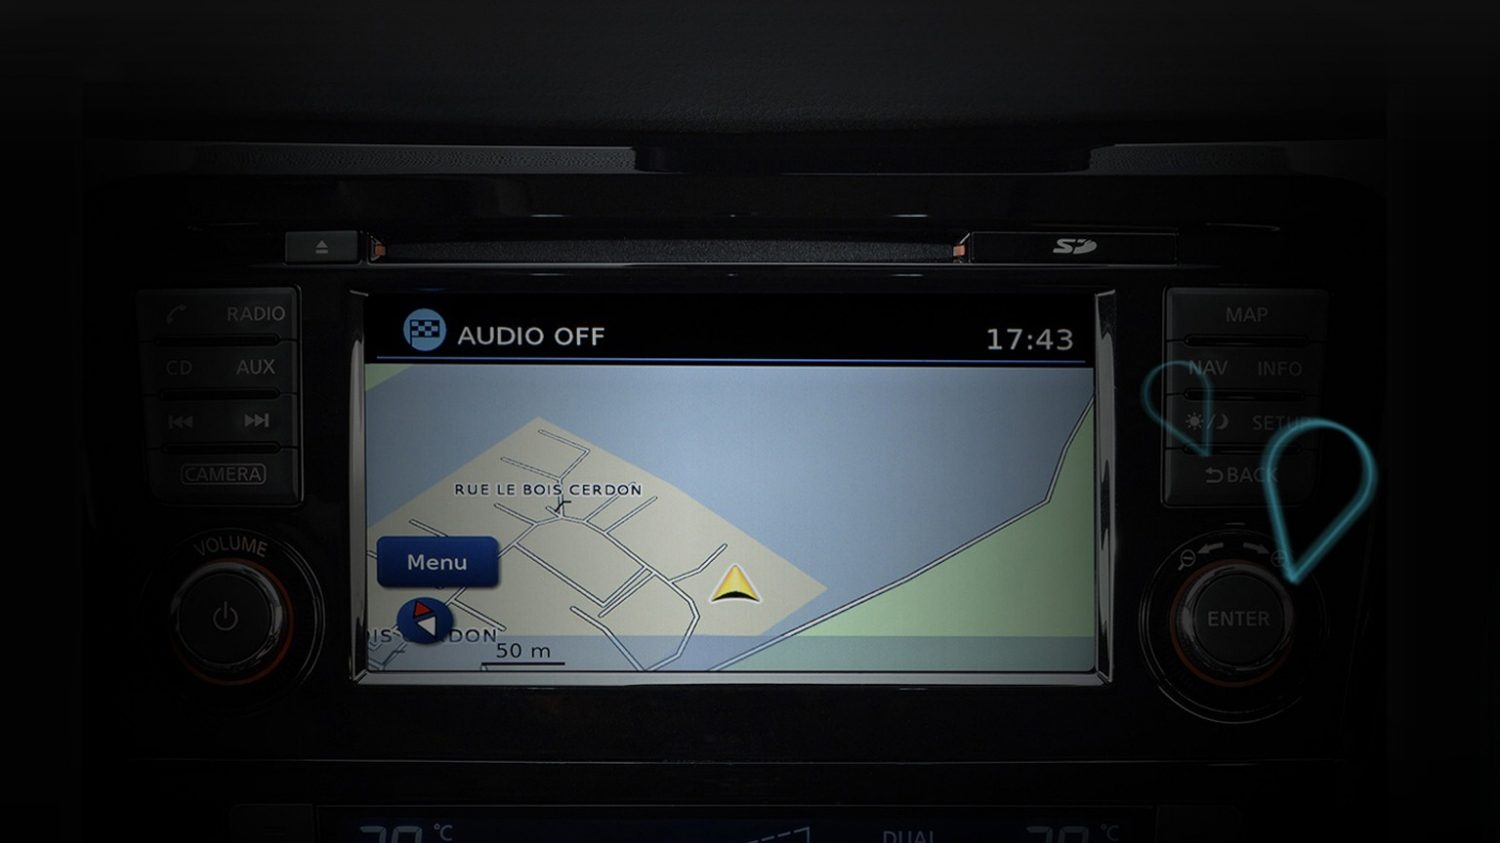 Nissan e-NV200 | Combi | Sat nav display